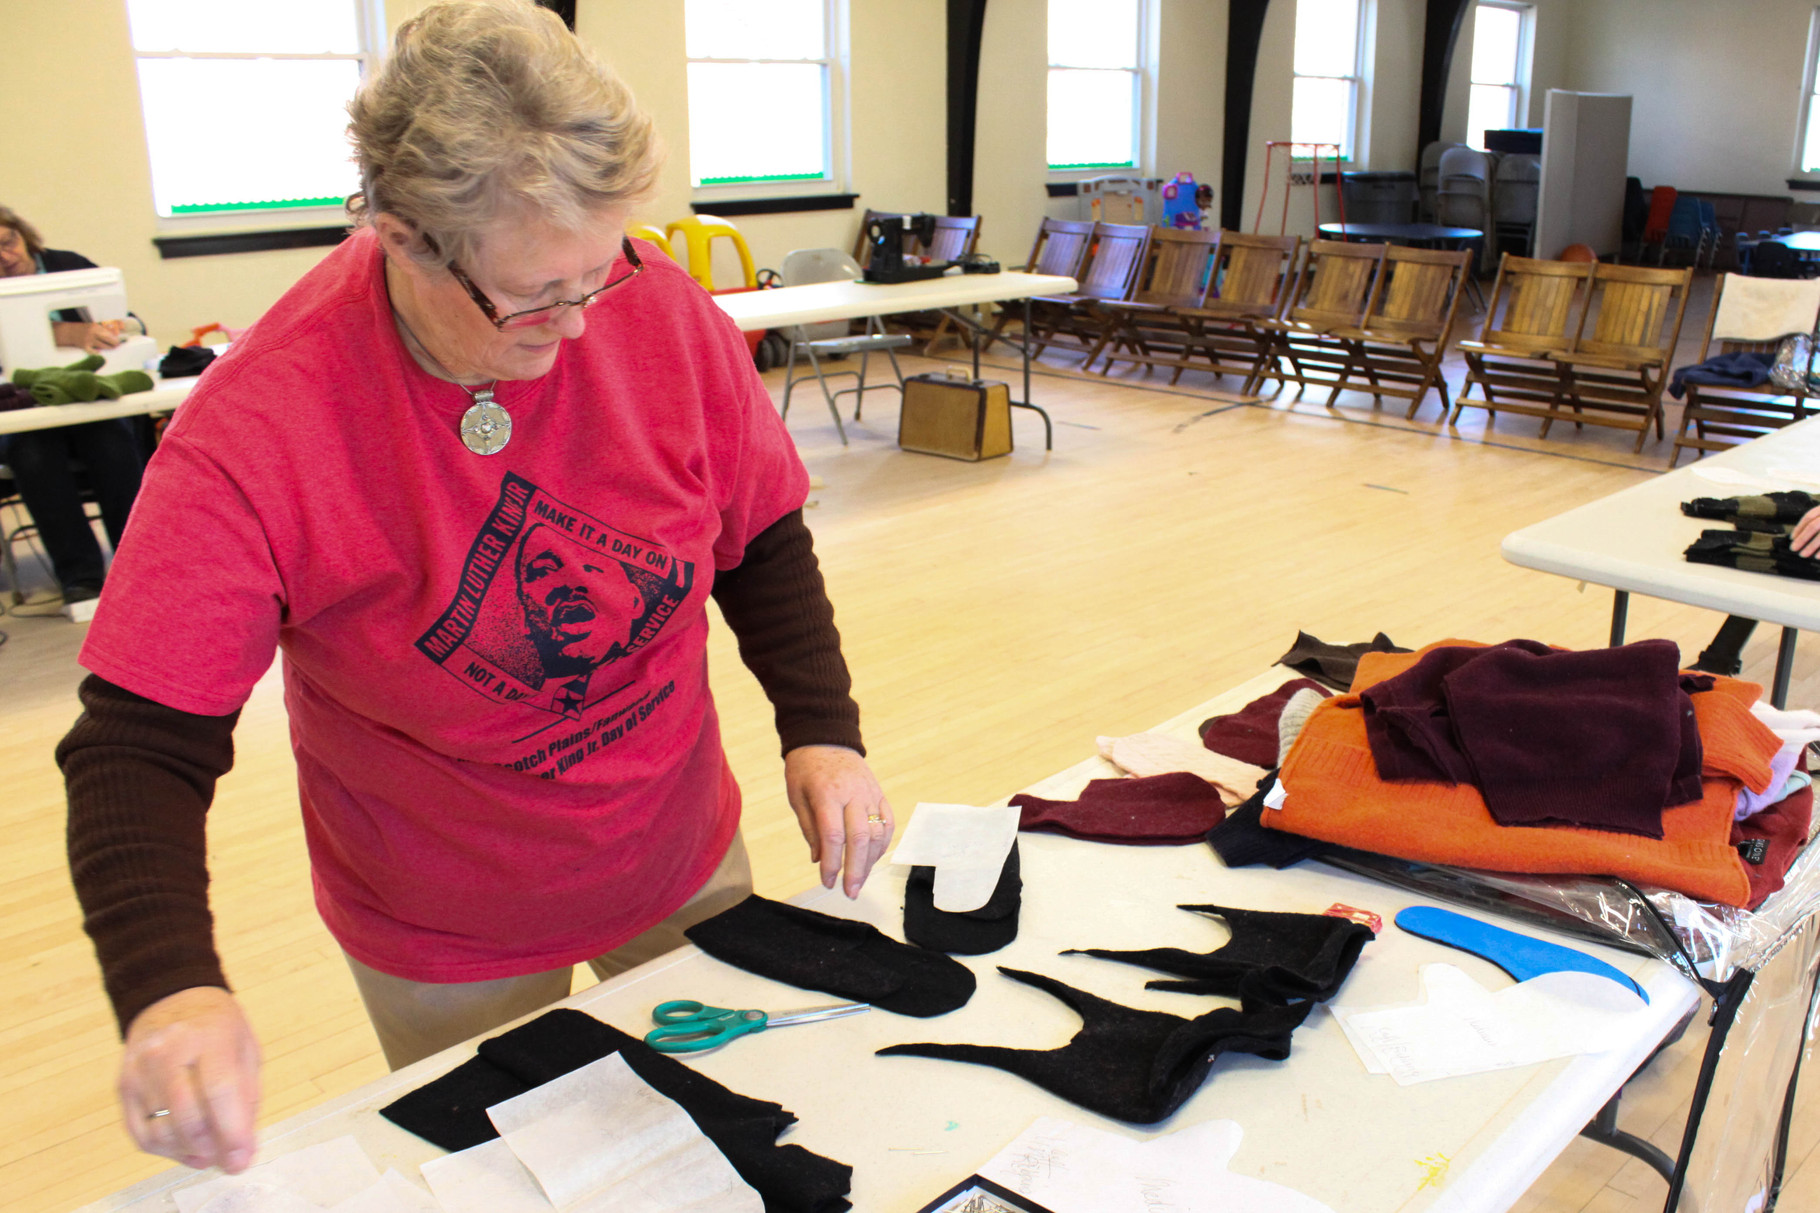 Mittens were made at Fanwood Presbyterian Church to be donated